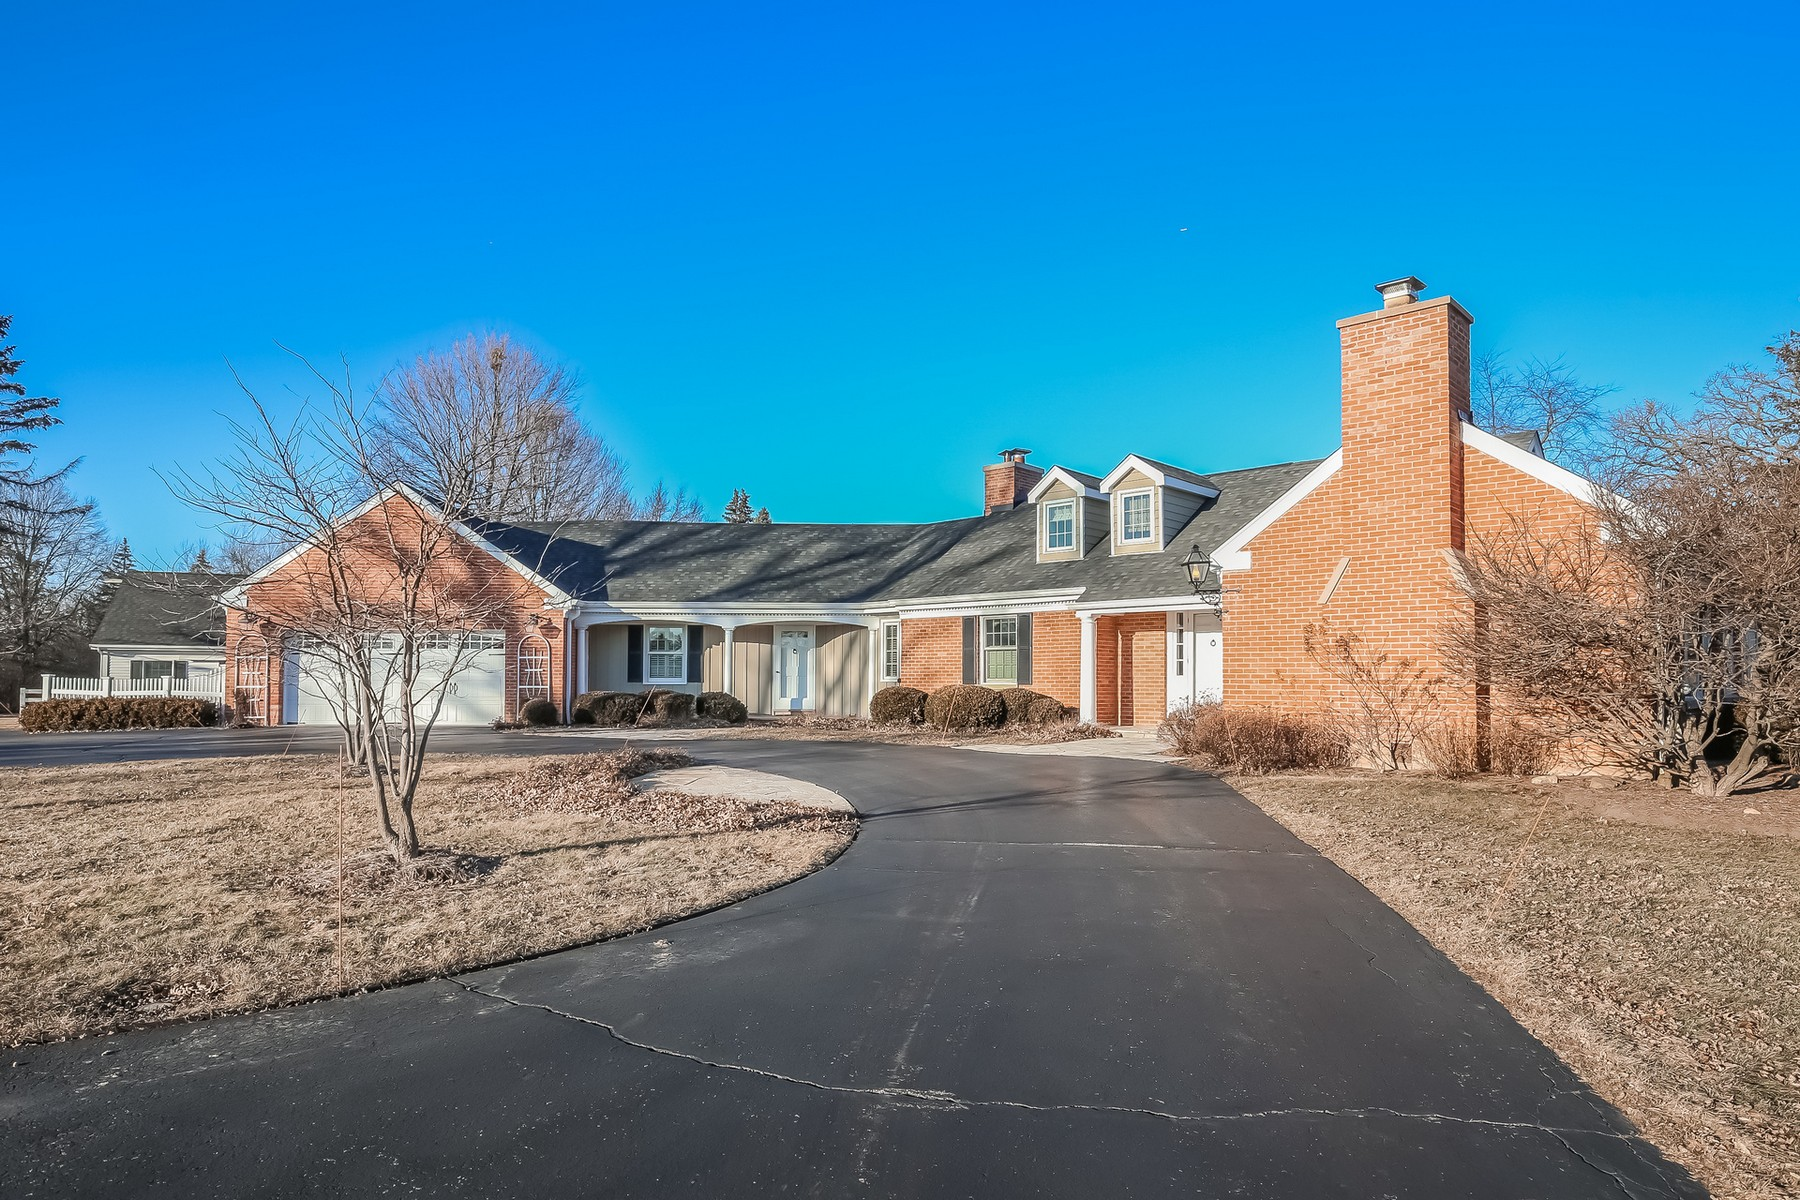 Single Family Home for Sale at Fabulous Cape Cod Home in Barrington Hills 254 Donlea Road, Barrington Hills, Illinois, 60010 United States